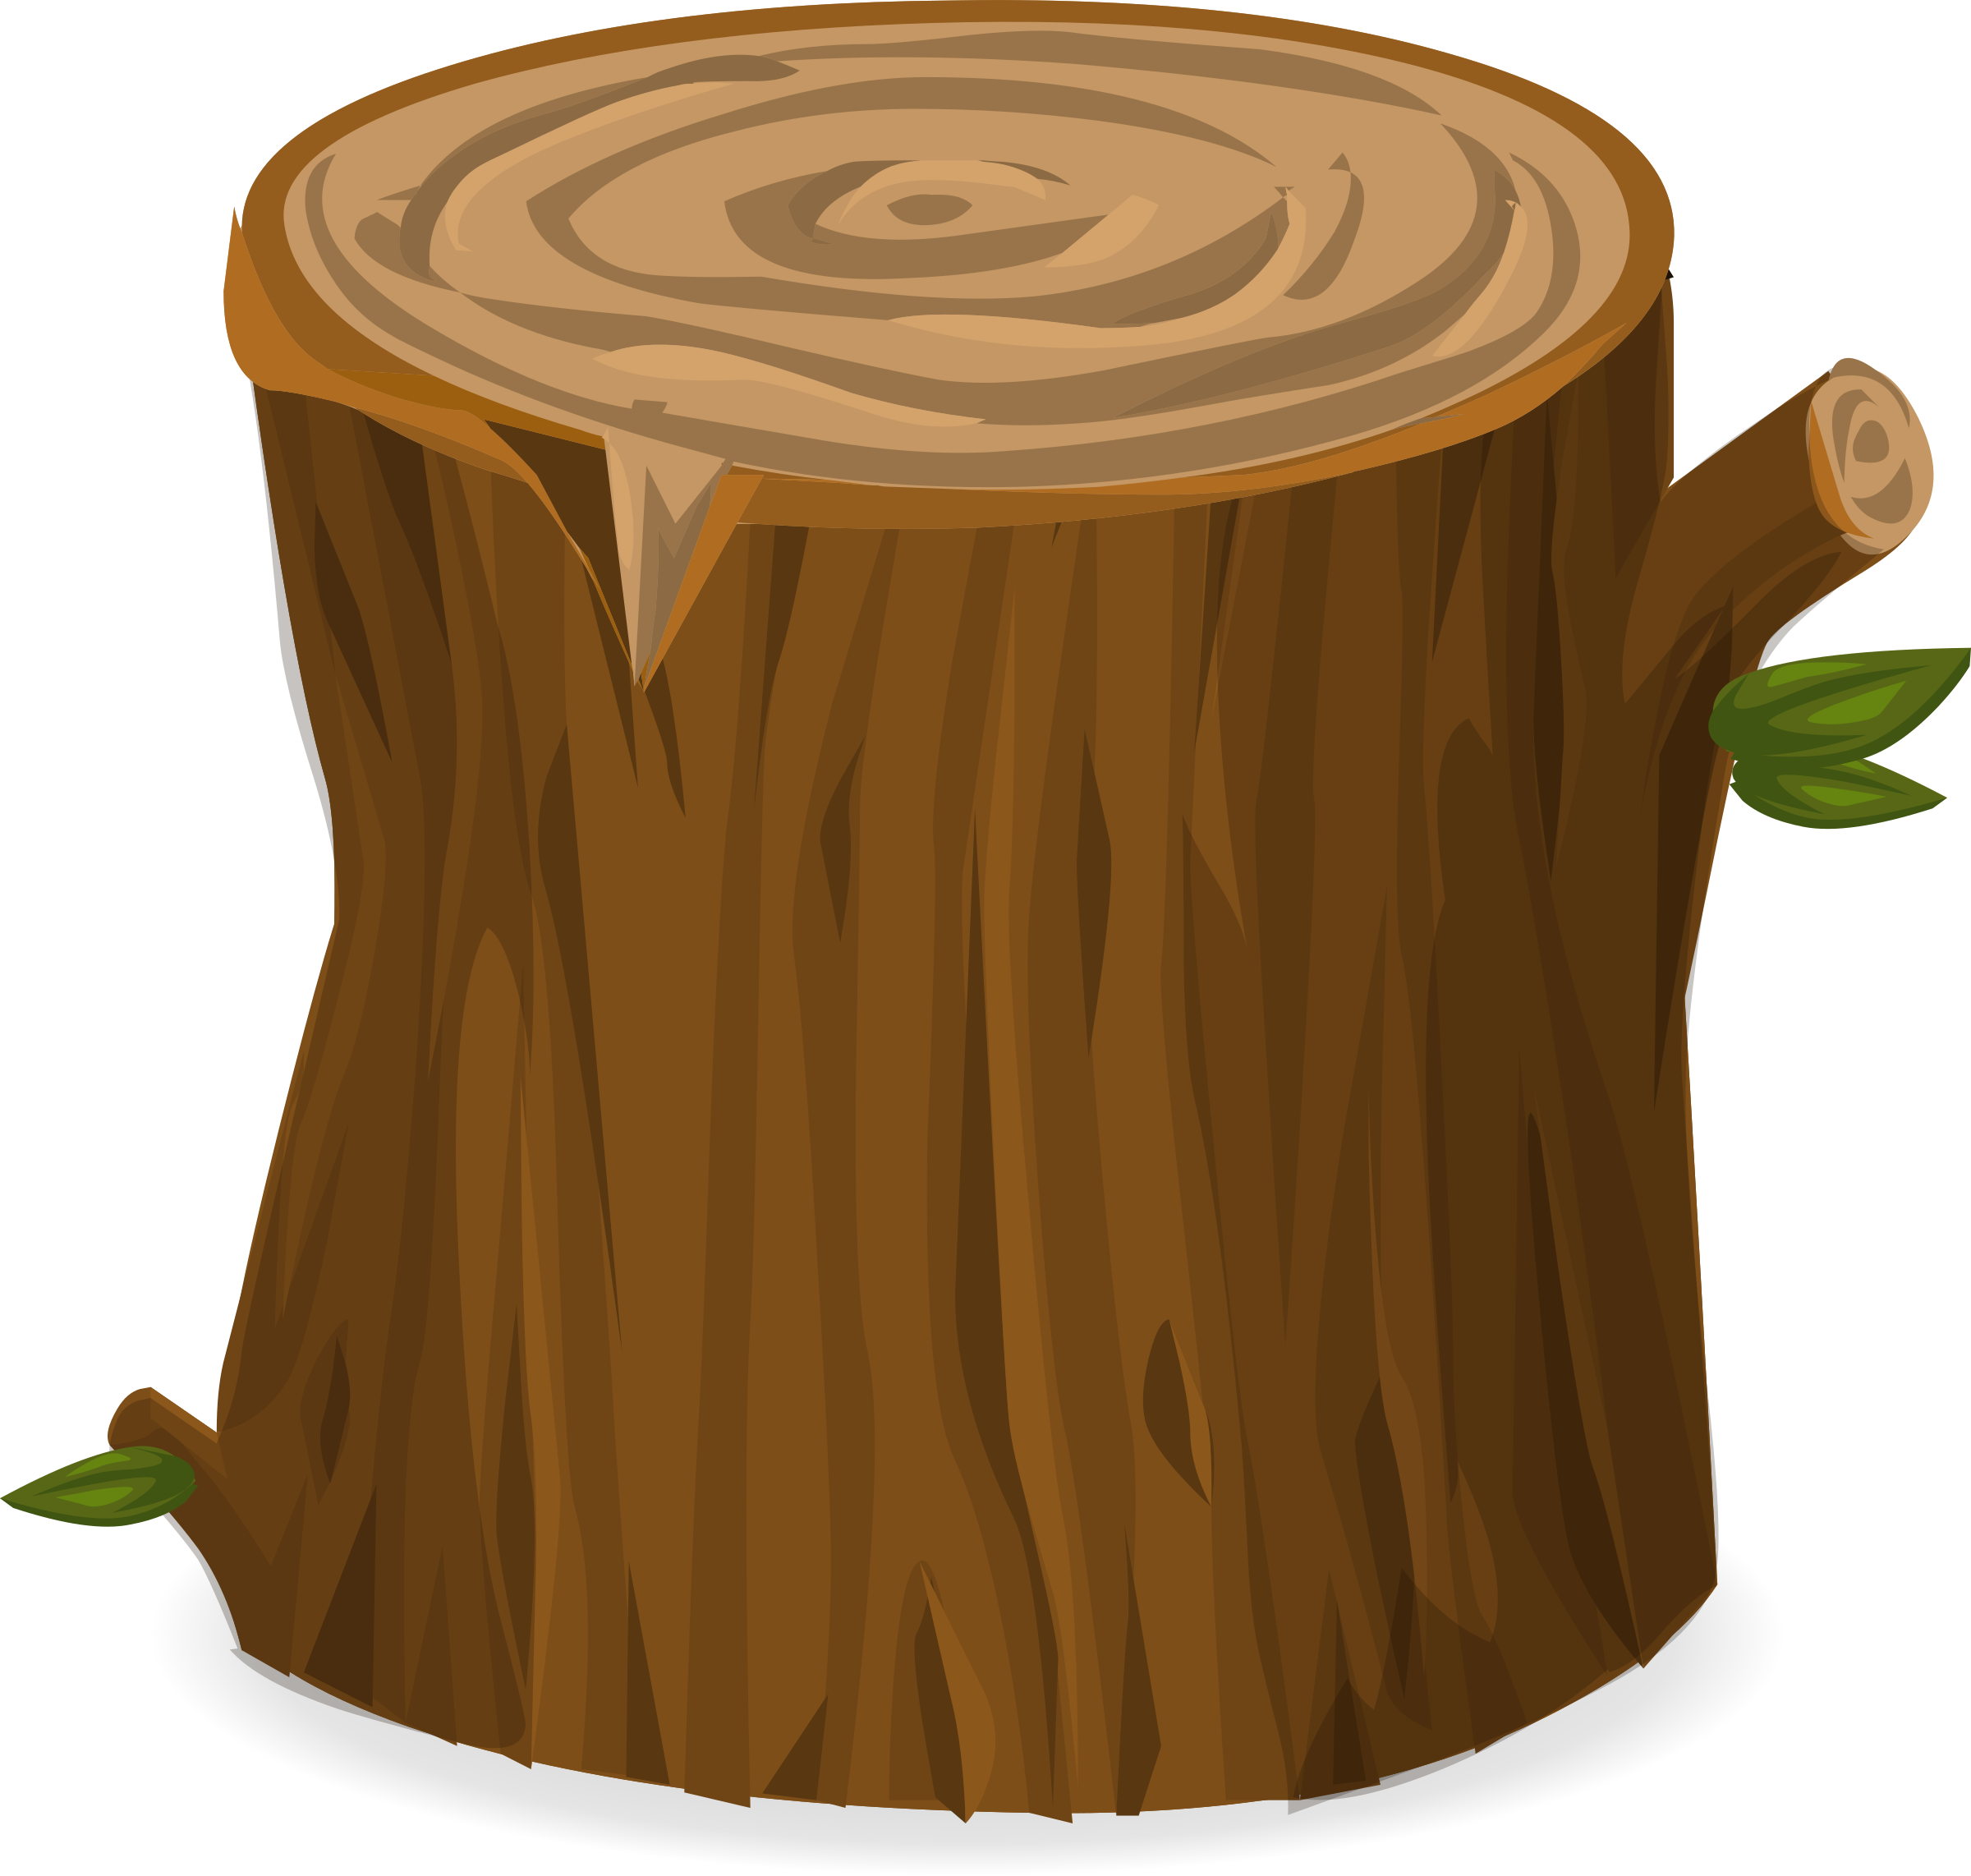 Tree stumps clipart jpg library Clipart - Tree stump from Glitch jpg library